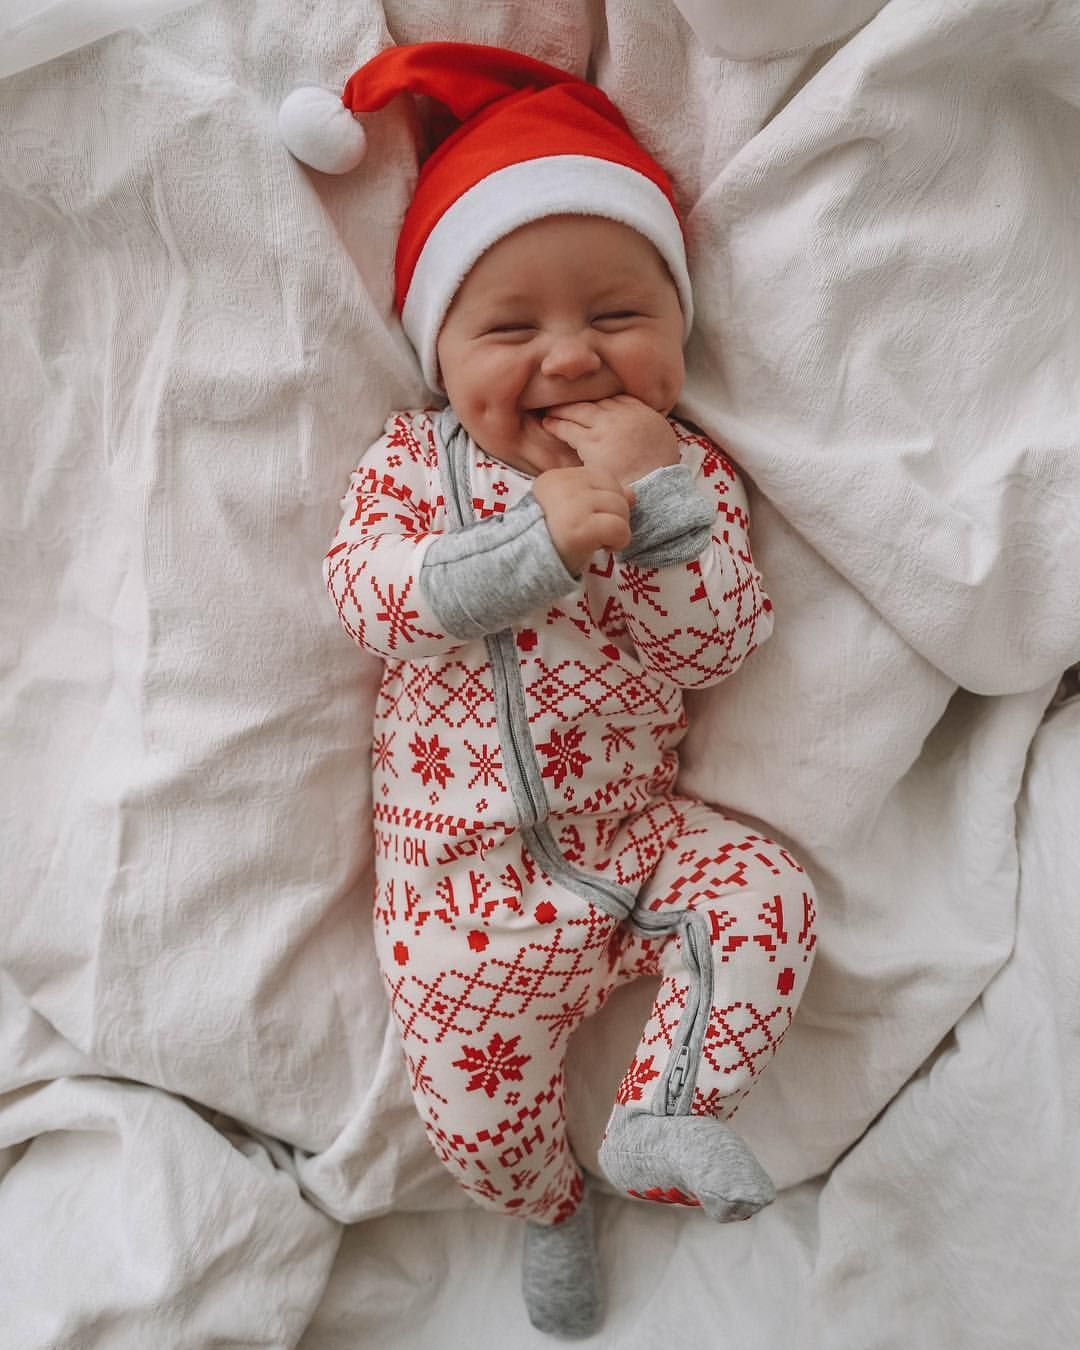 Pin By Jessica On L I T T L E B A B E S Cute Baby Photos Cute Baby Clothes Baby Boy Outfits